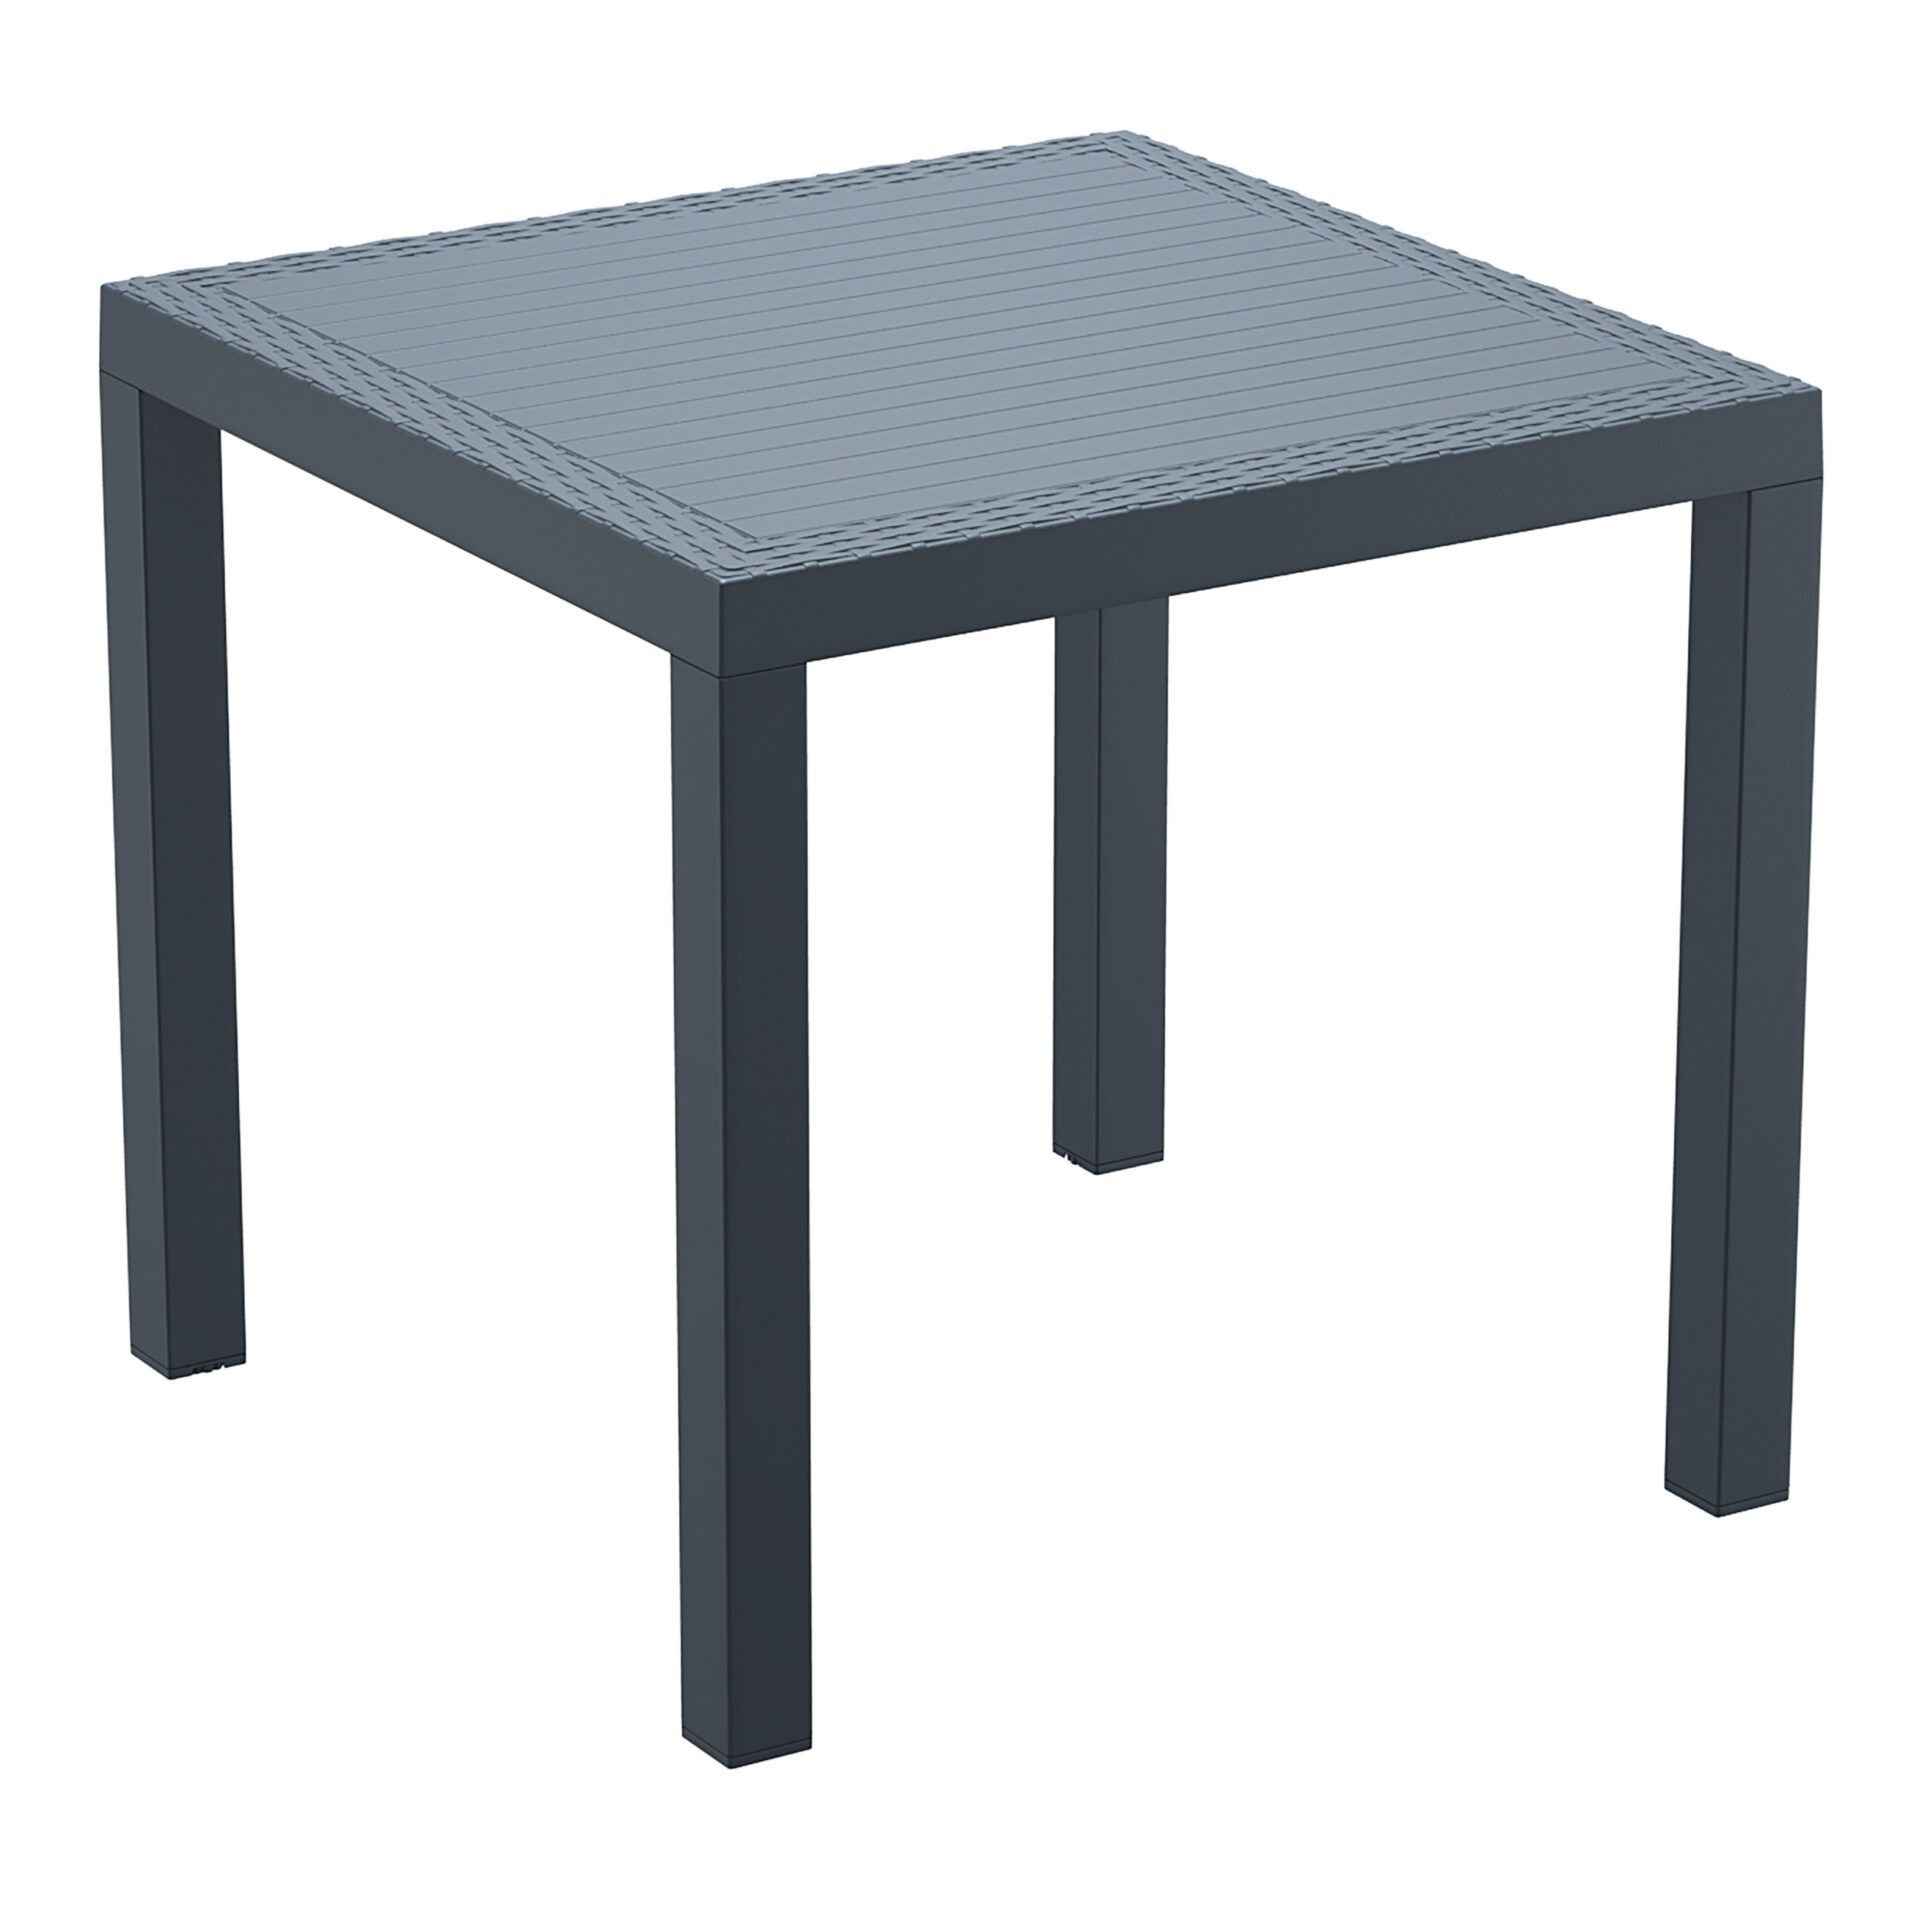 outdoor resin rattan cafe plastic top bali table 80 darkgrey front side 1